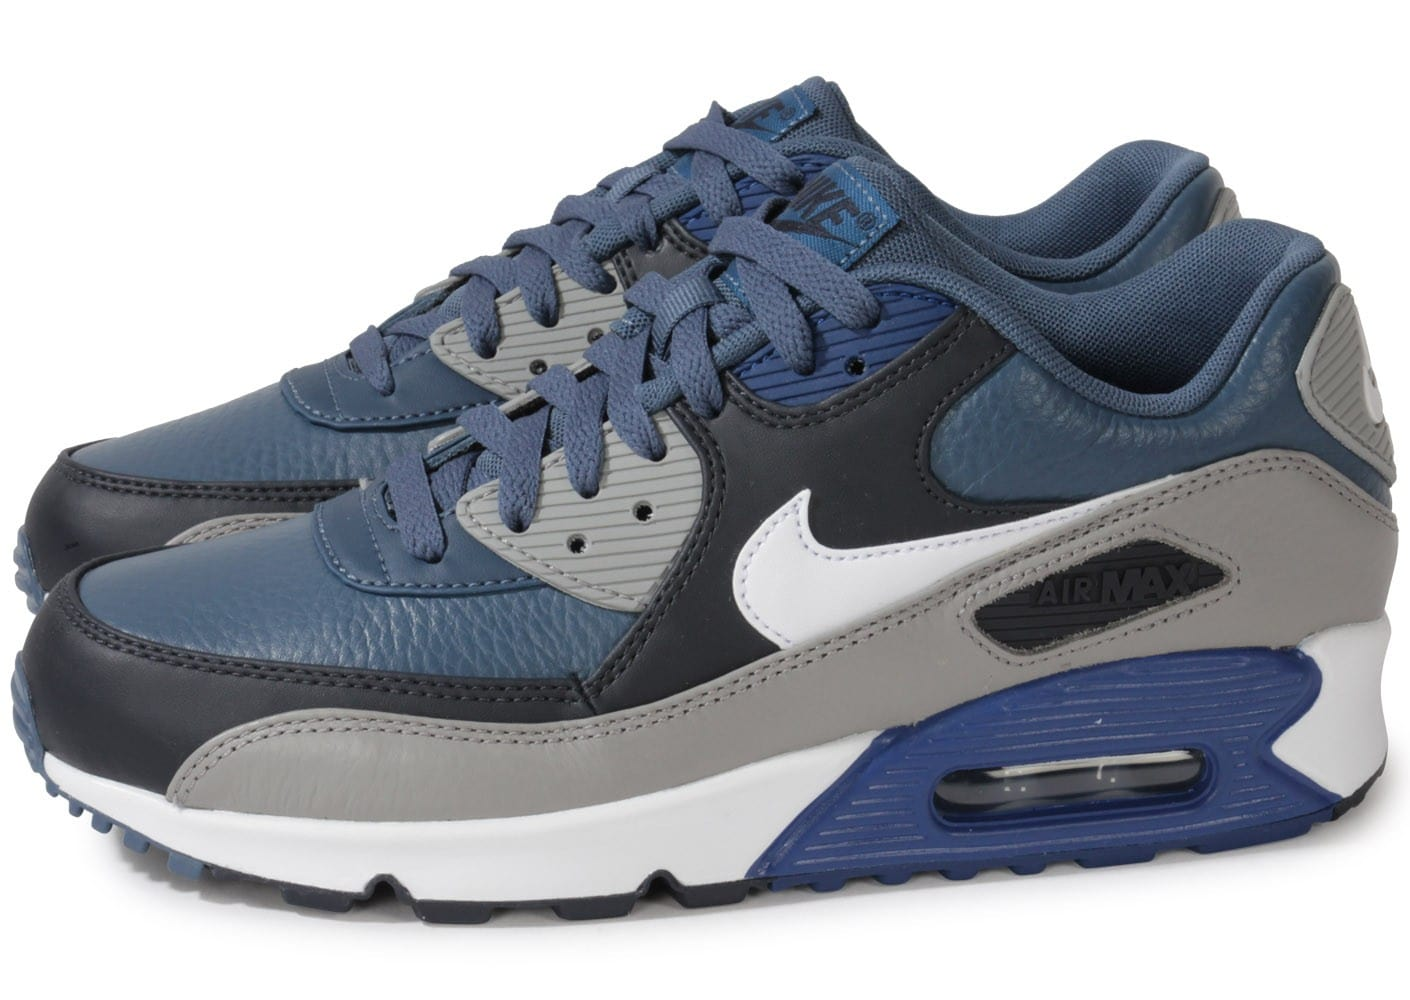 nike air max 90 ltr new slate bleue chaussures homme chausport. Black Bedroom Furniture Sets. Home Design Ideas